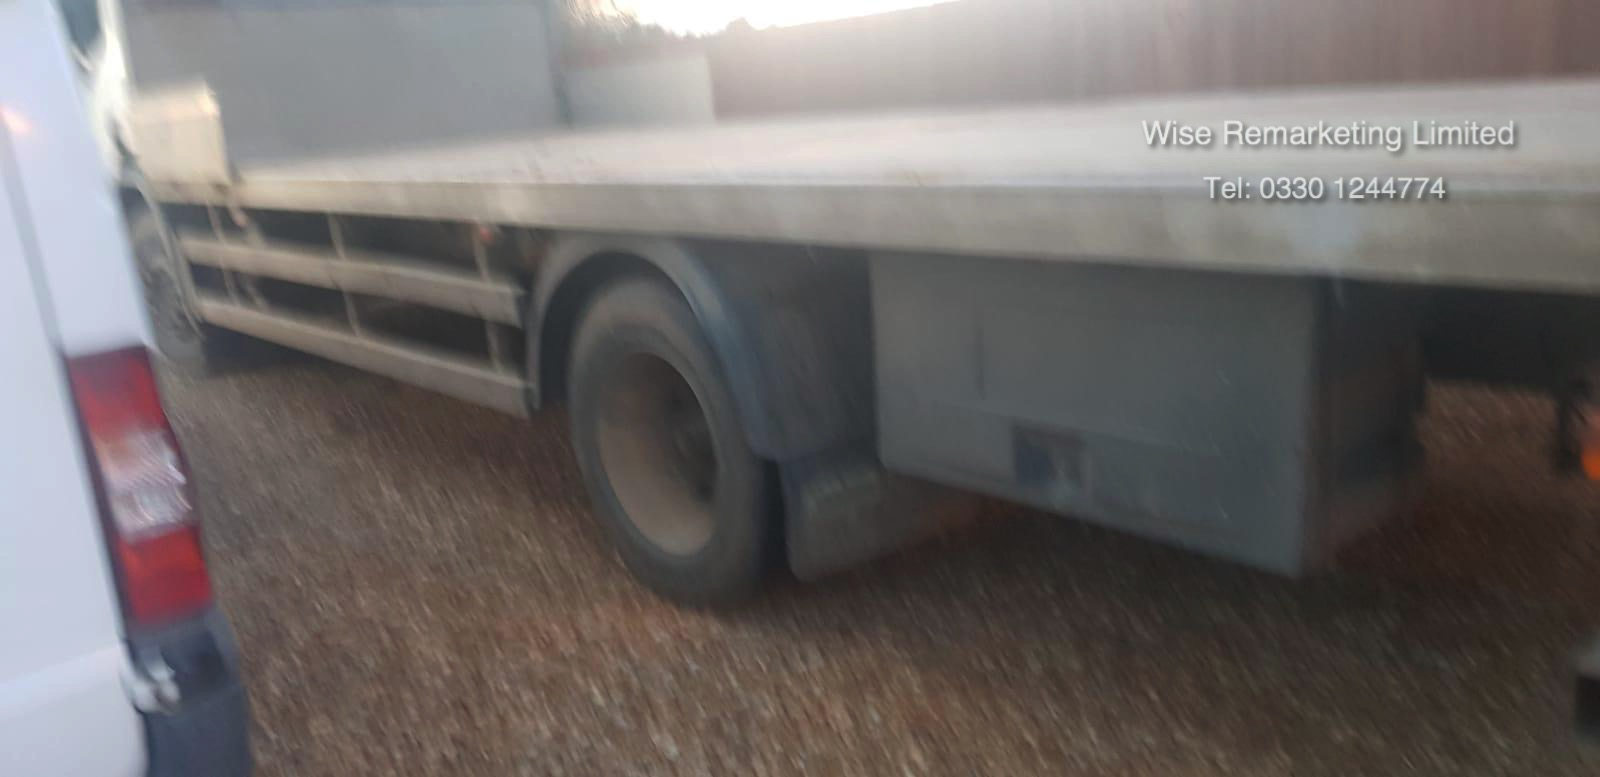 (Reserve Met) Scania 94d.220 18 Tonne 4x2 Flat Bed Lorry - W Reg 2000 Year - SAVE 20% NO VAT - Image 12 of 30